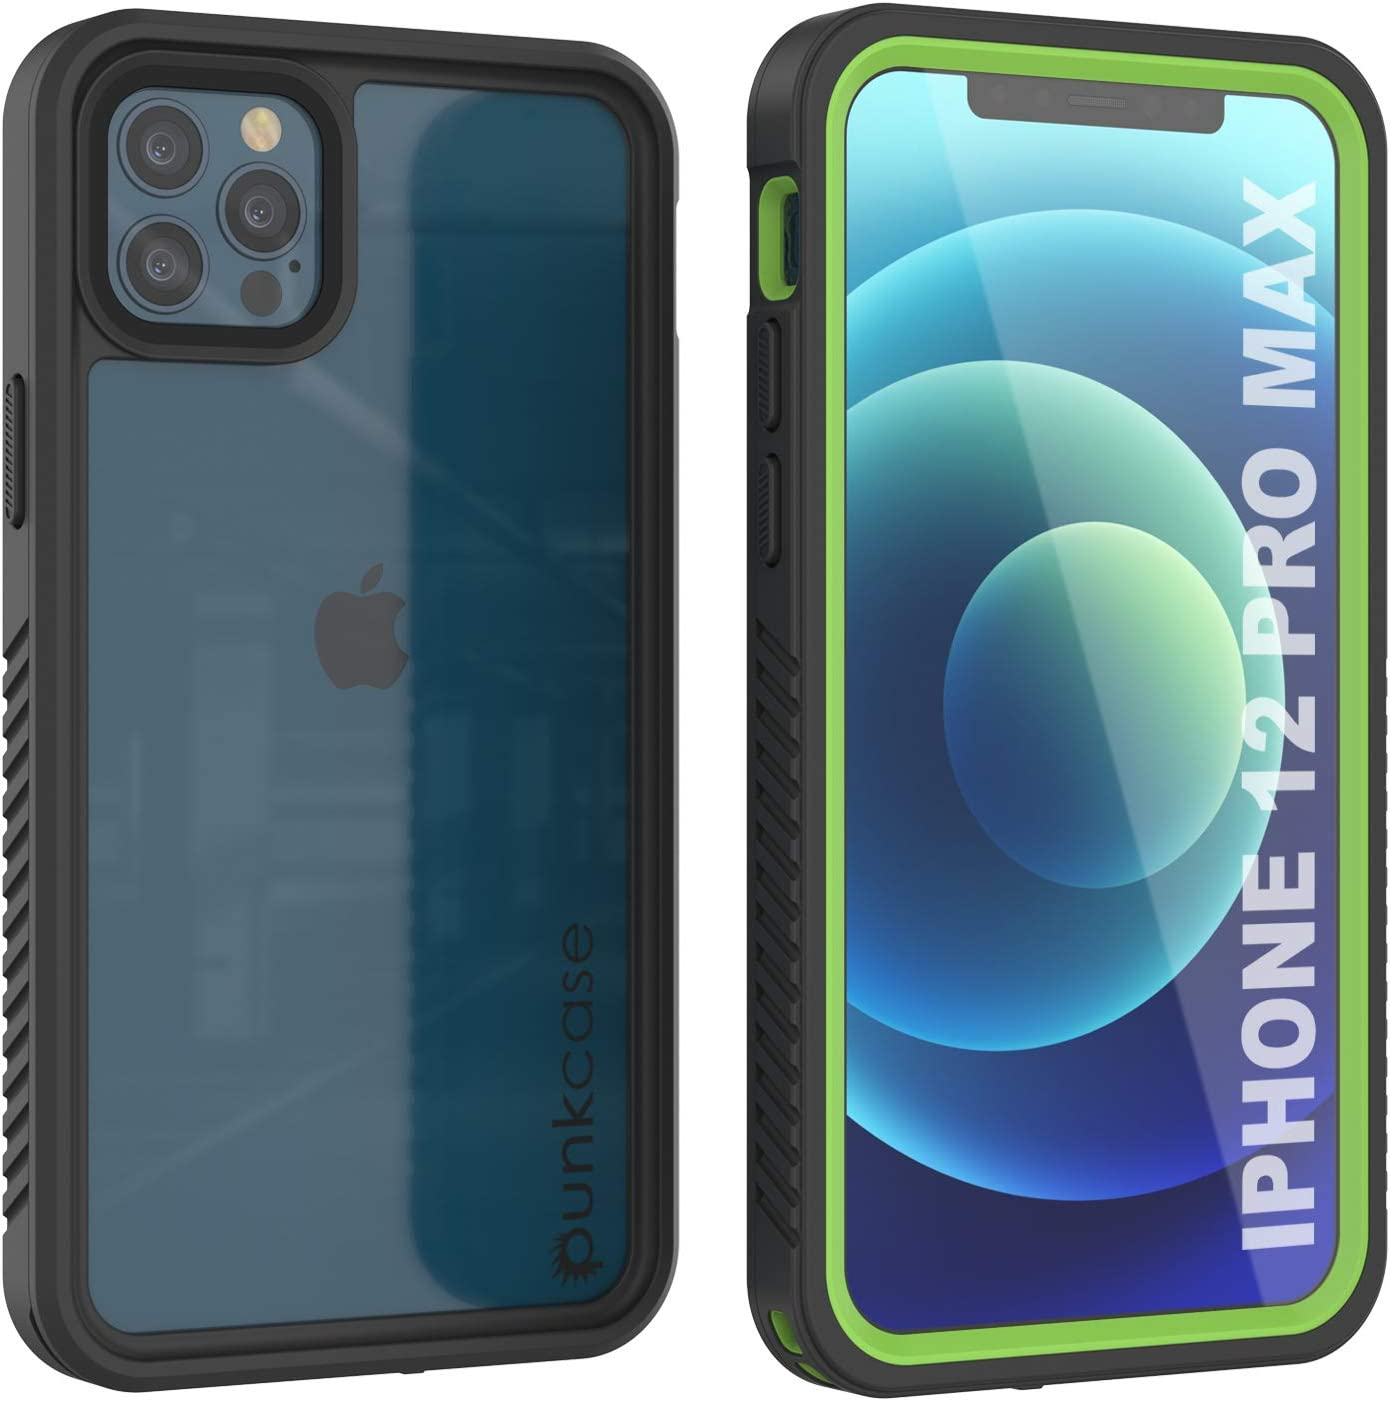 Punkcase iPhone 12 Pro Max Waterproof Case [Extreme Series] [Slim Fit] [IP68 Certified] [Shockproof] [Snowproof] Armor Cover W/Built in Screen Protector for iPhone 12 Pro Max (6.7